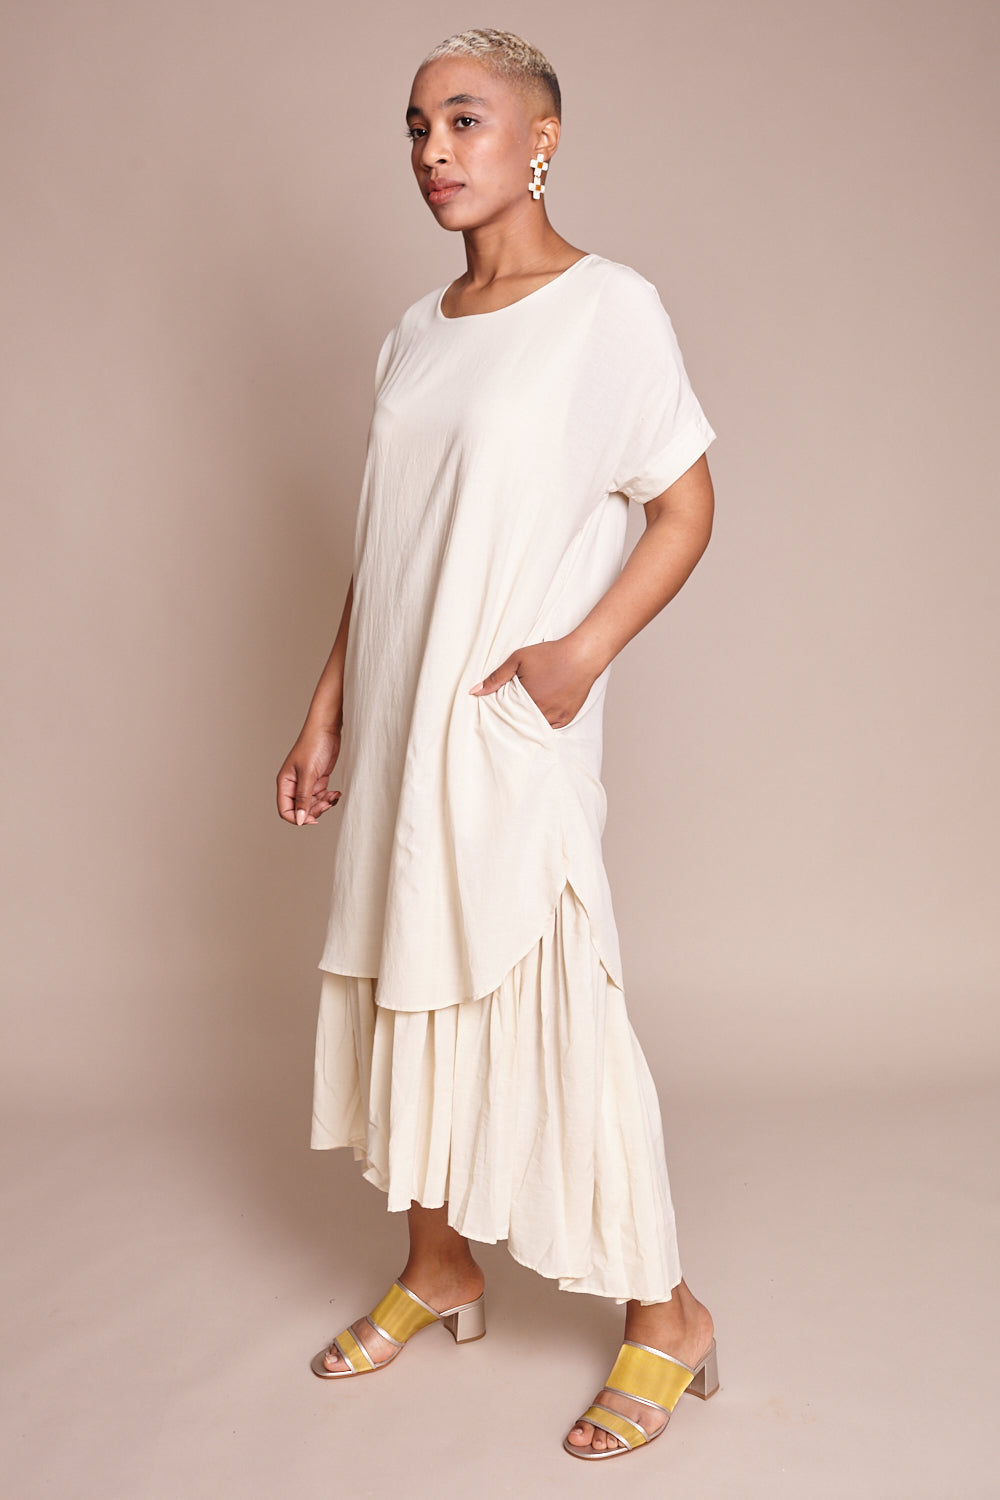 Black Crane Double Dress in Cream - Vert & Vogue